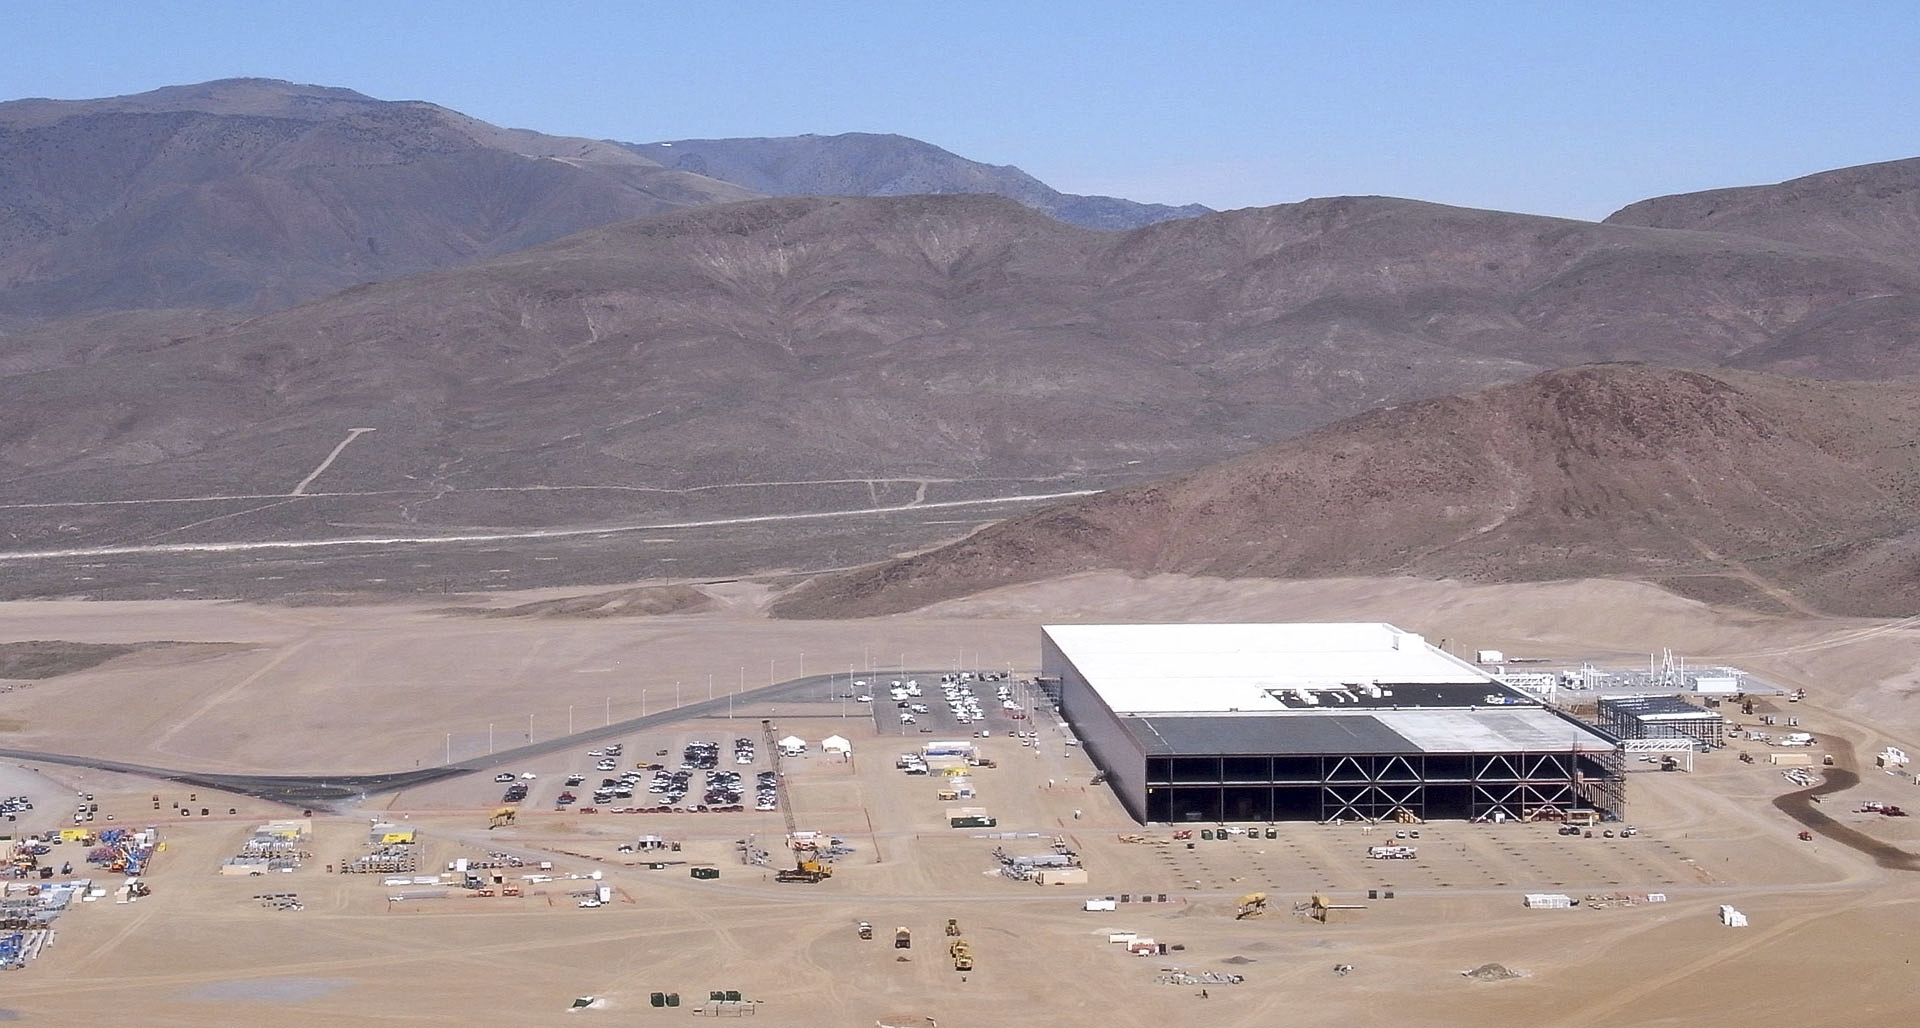 A Rare Look Inside The 'Gigafactory' Tesla Hopes Will Revolutionize Energy Use